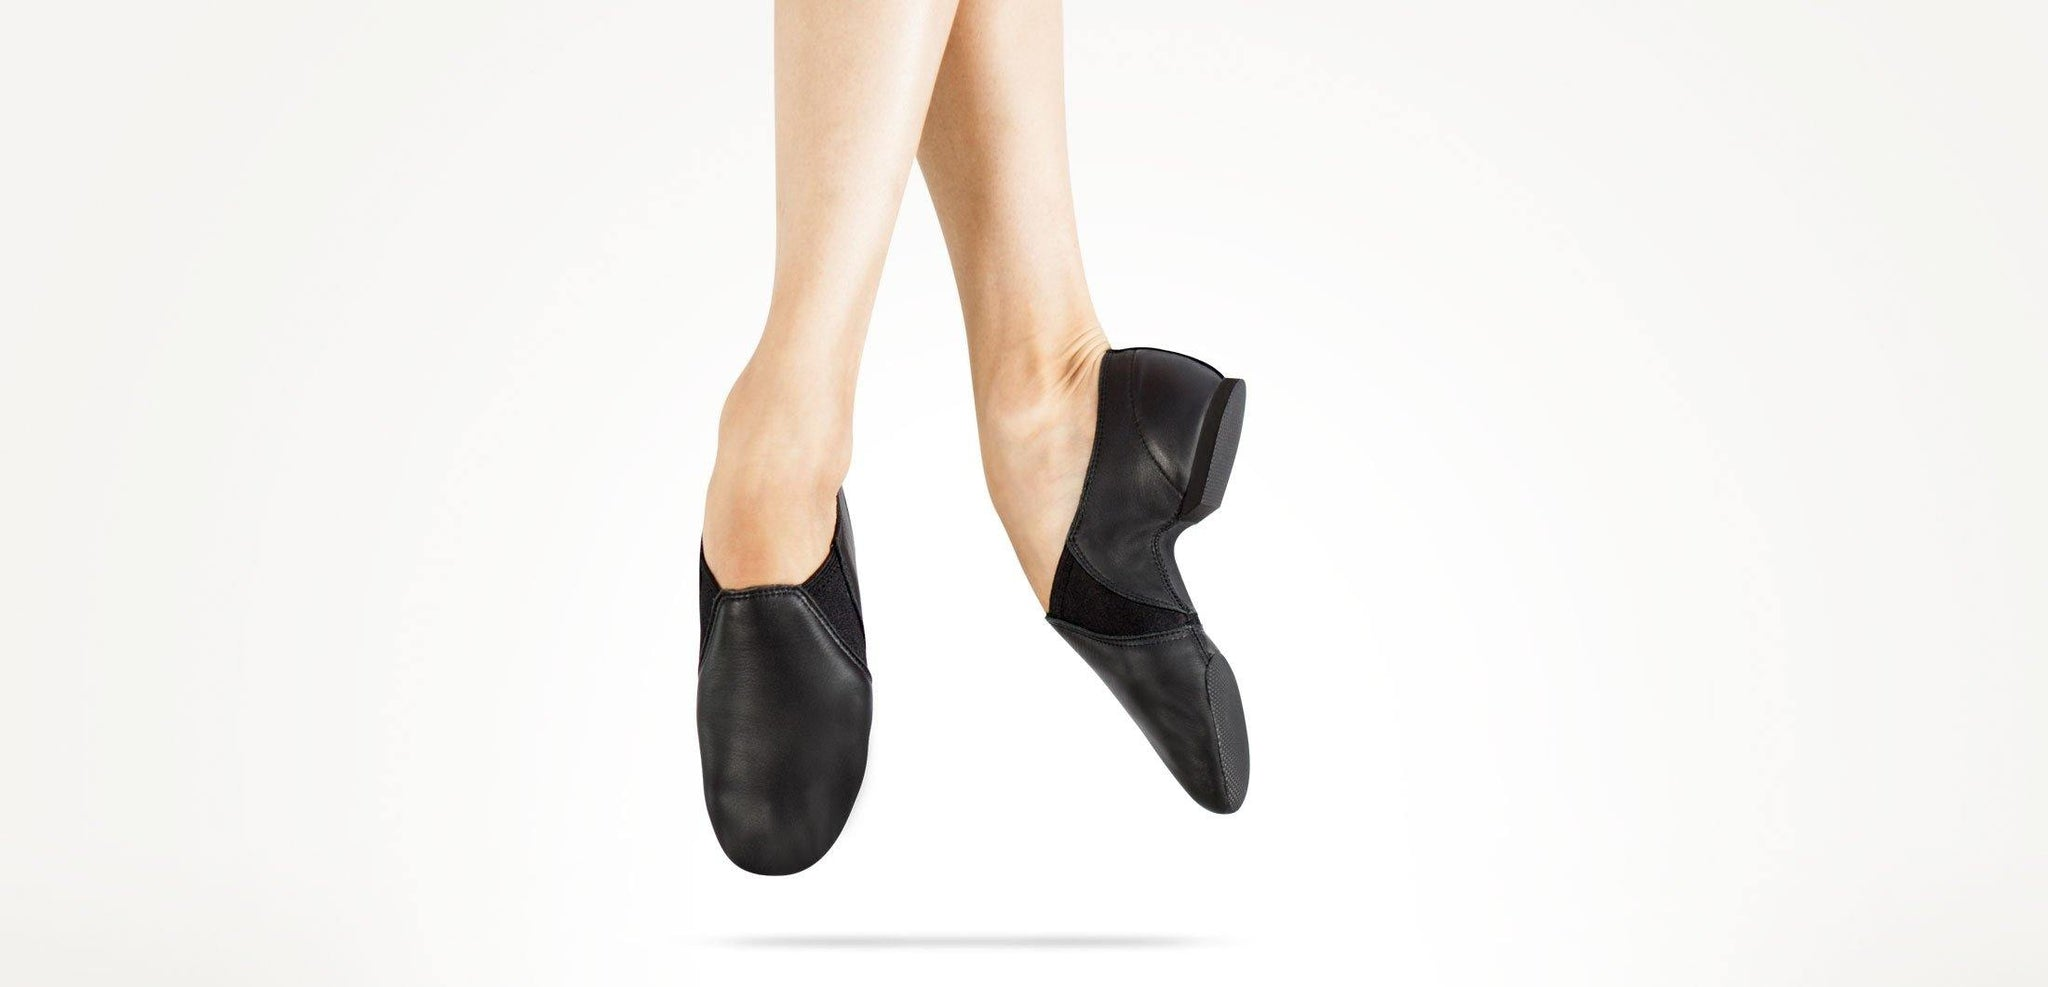 Protract Leather Jazz Shoe Adult MDM Pointe Boutique